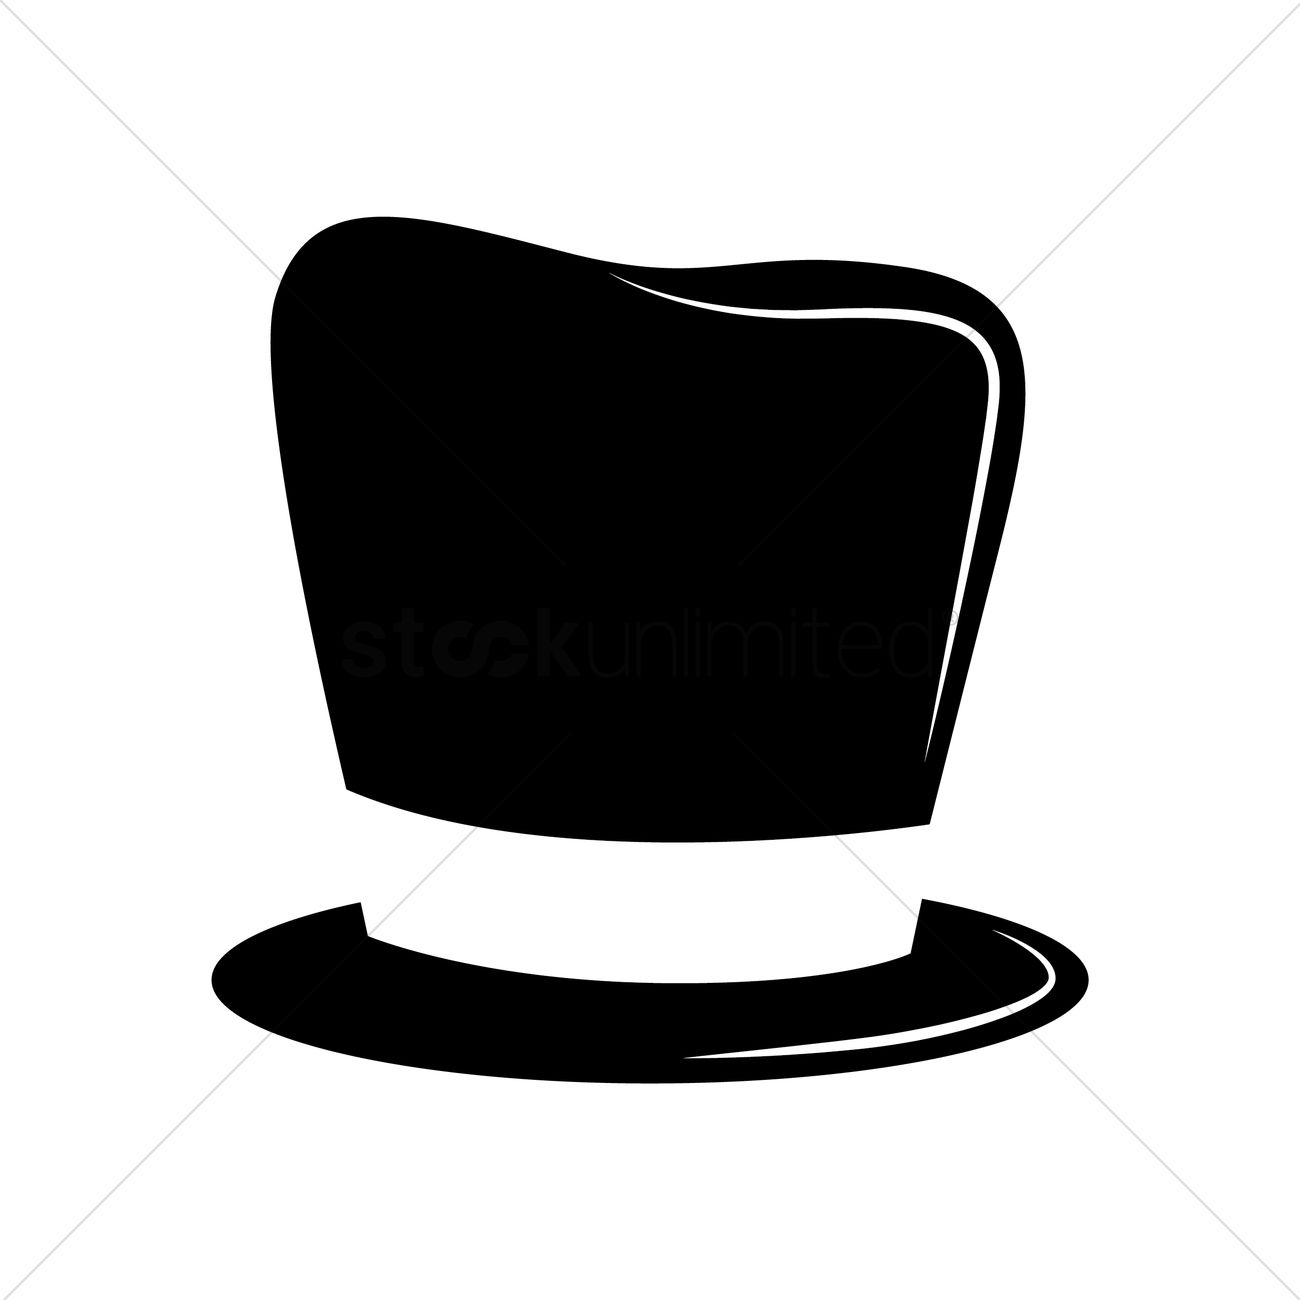 Silhouette of a magician's hat Vector Image - 1463994 ...